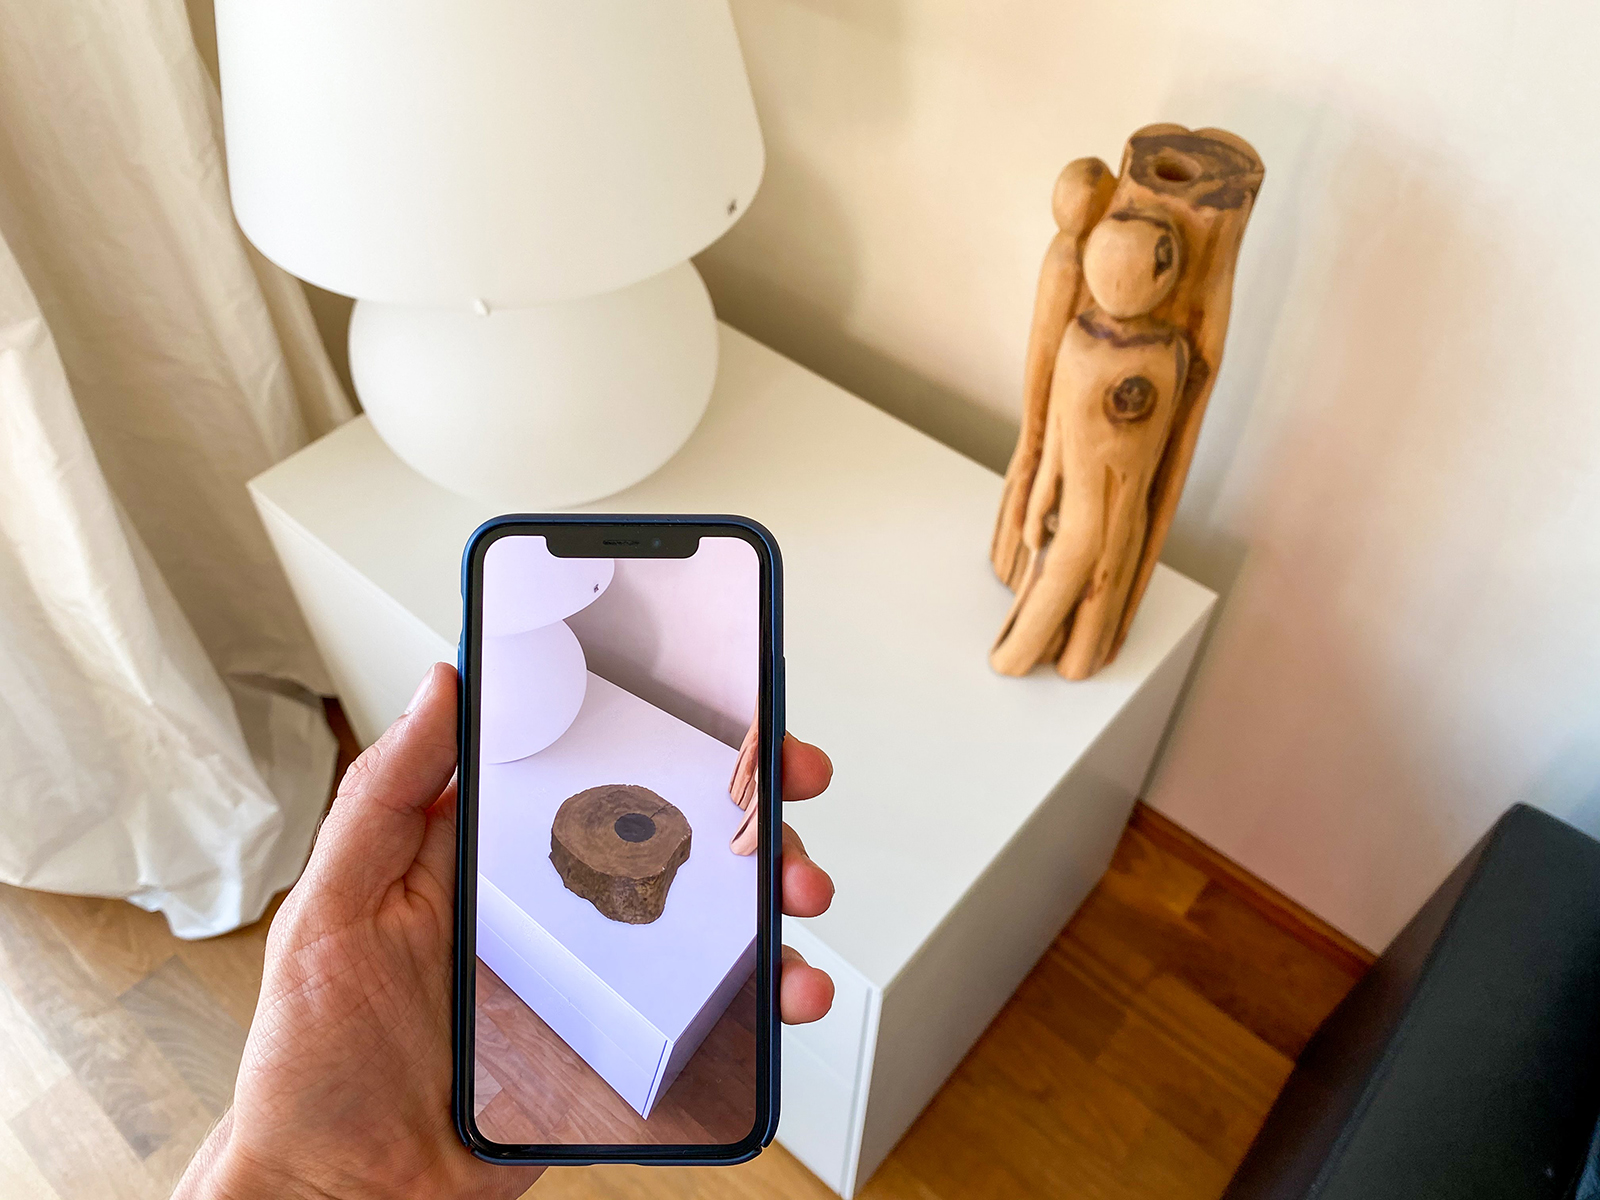 An iPhone displays what a atrifact would look like in someone's home